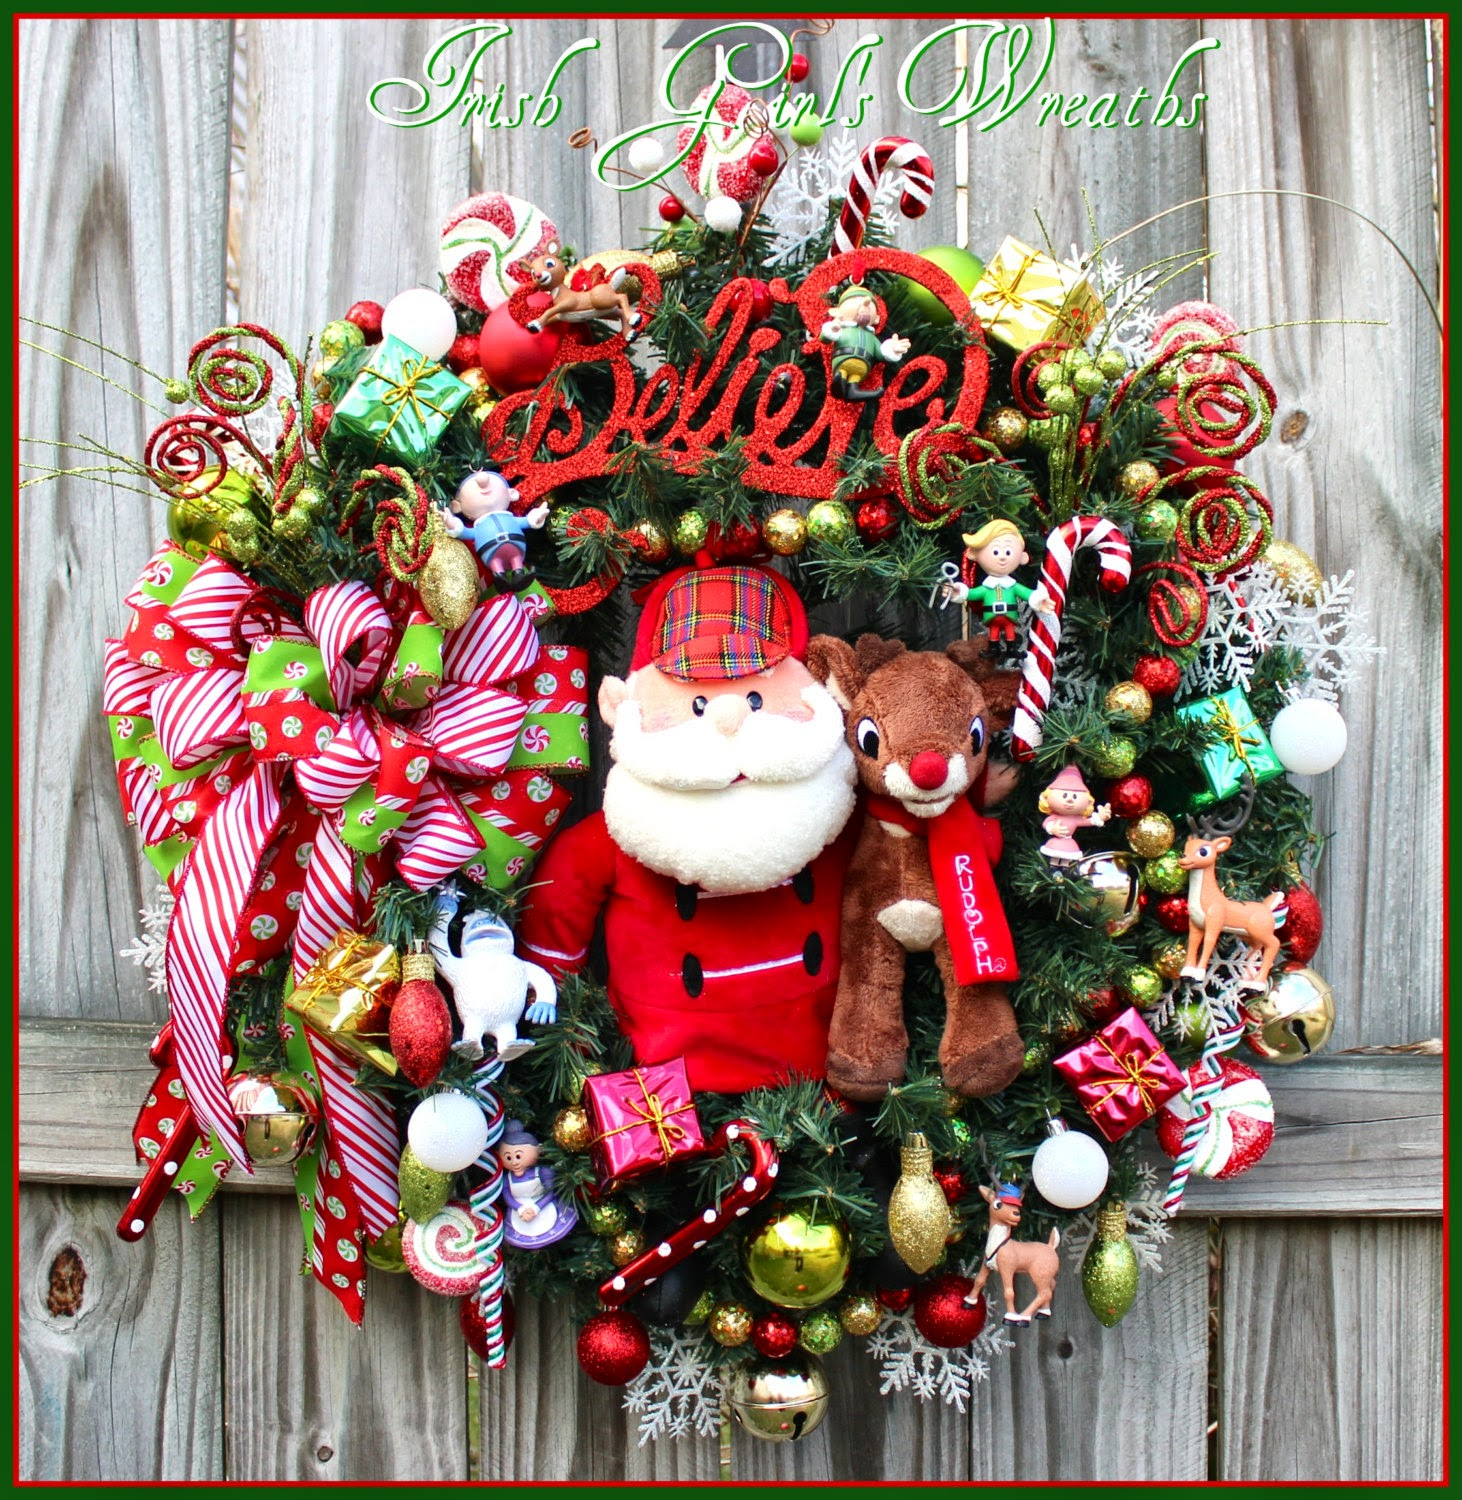 Large Believe Santa and Rudolph Christmas Wreath